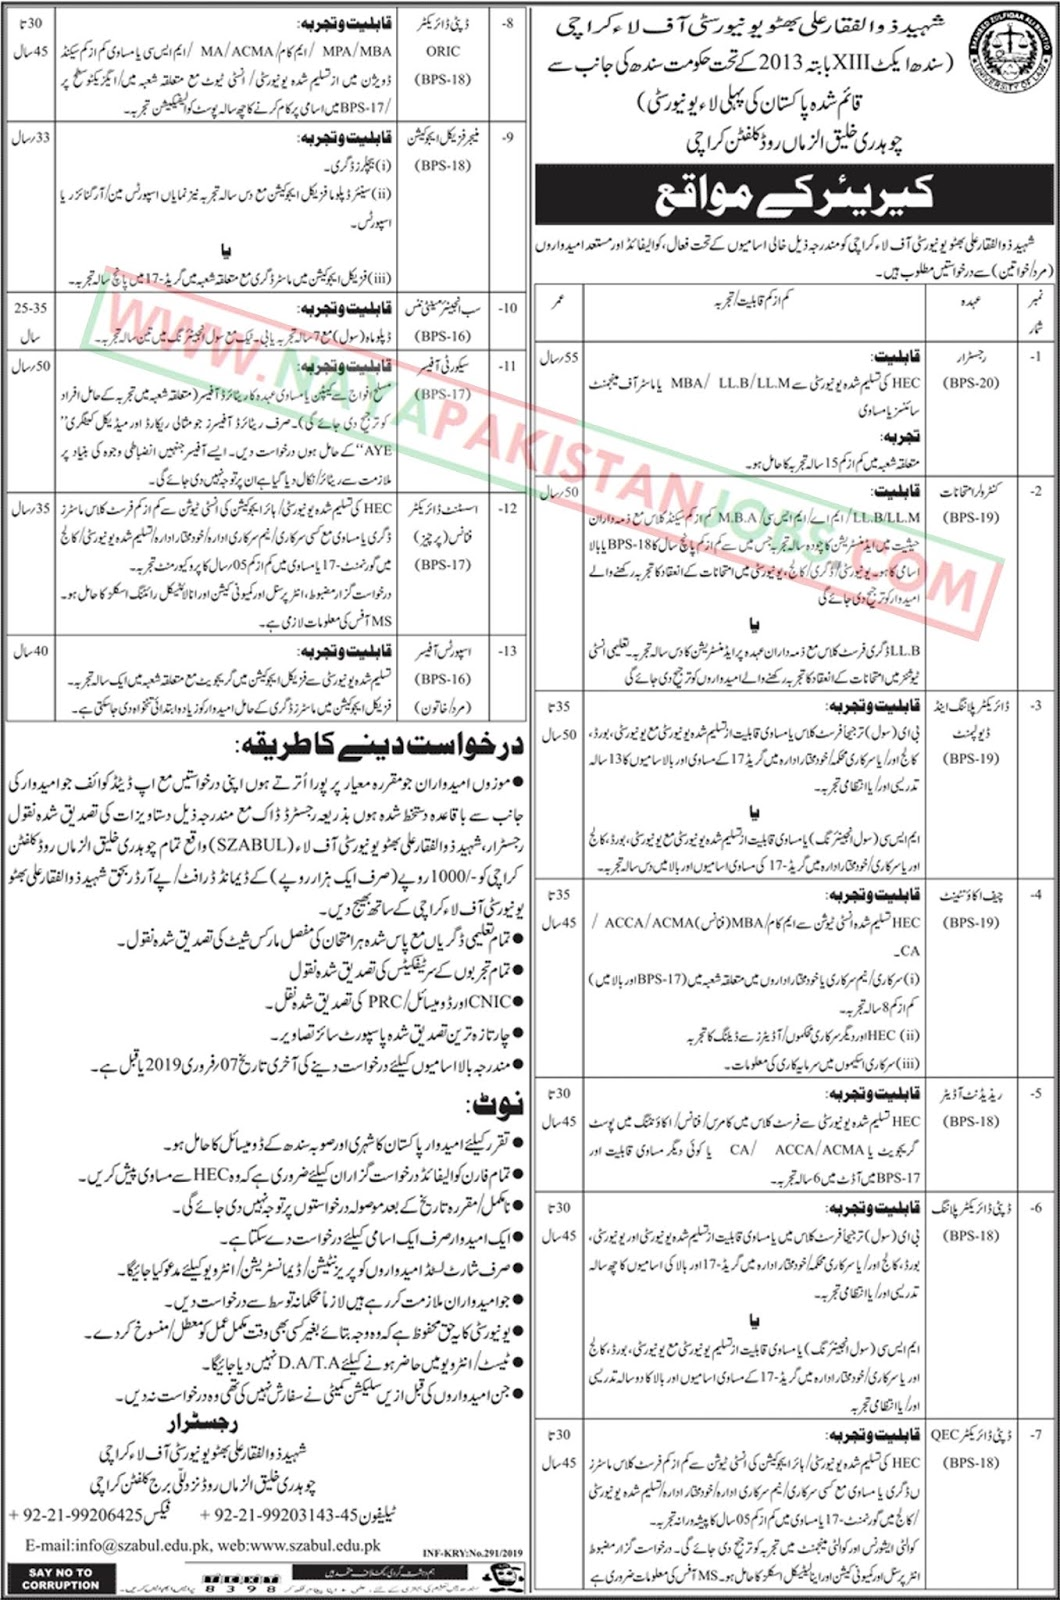 Shaheed Zulfiqar Ali Bhutto University Of Law Jobs 2019, University of Law Karachi Jobs